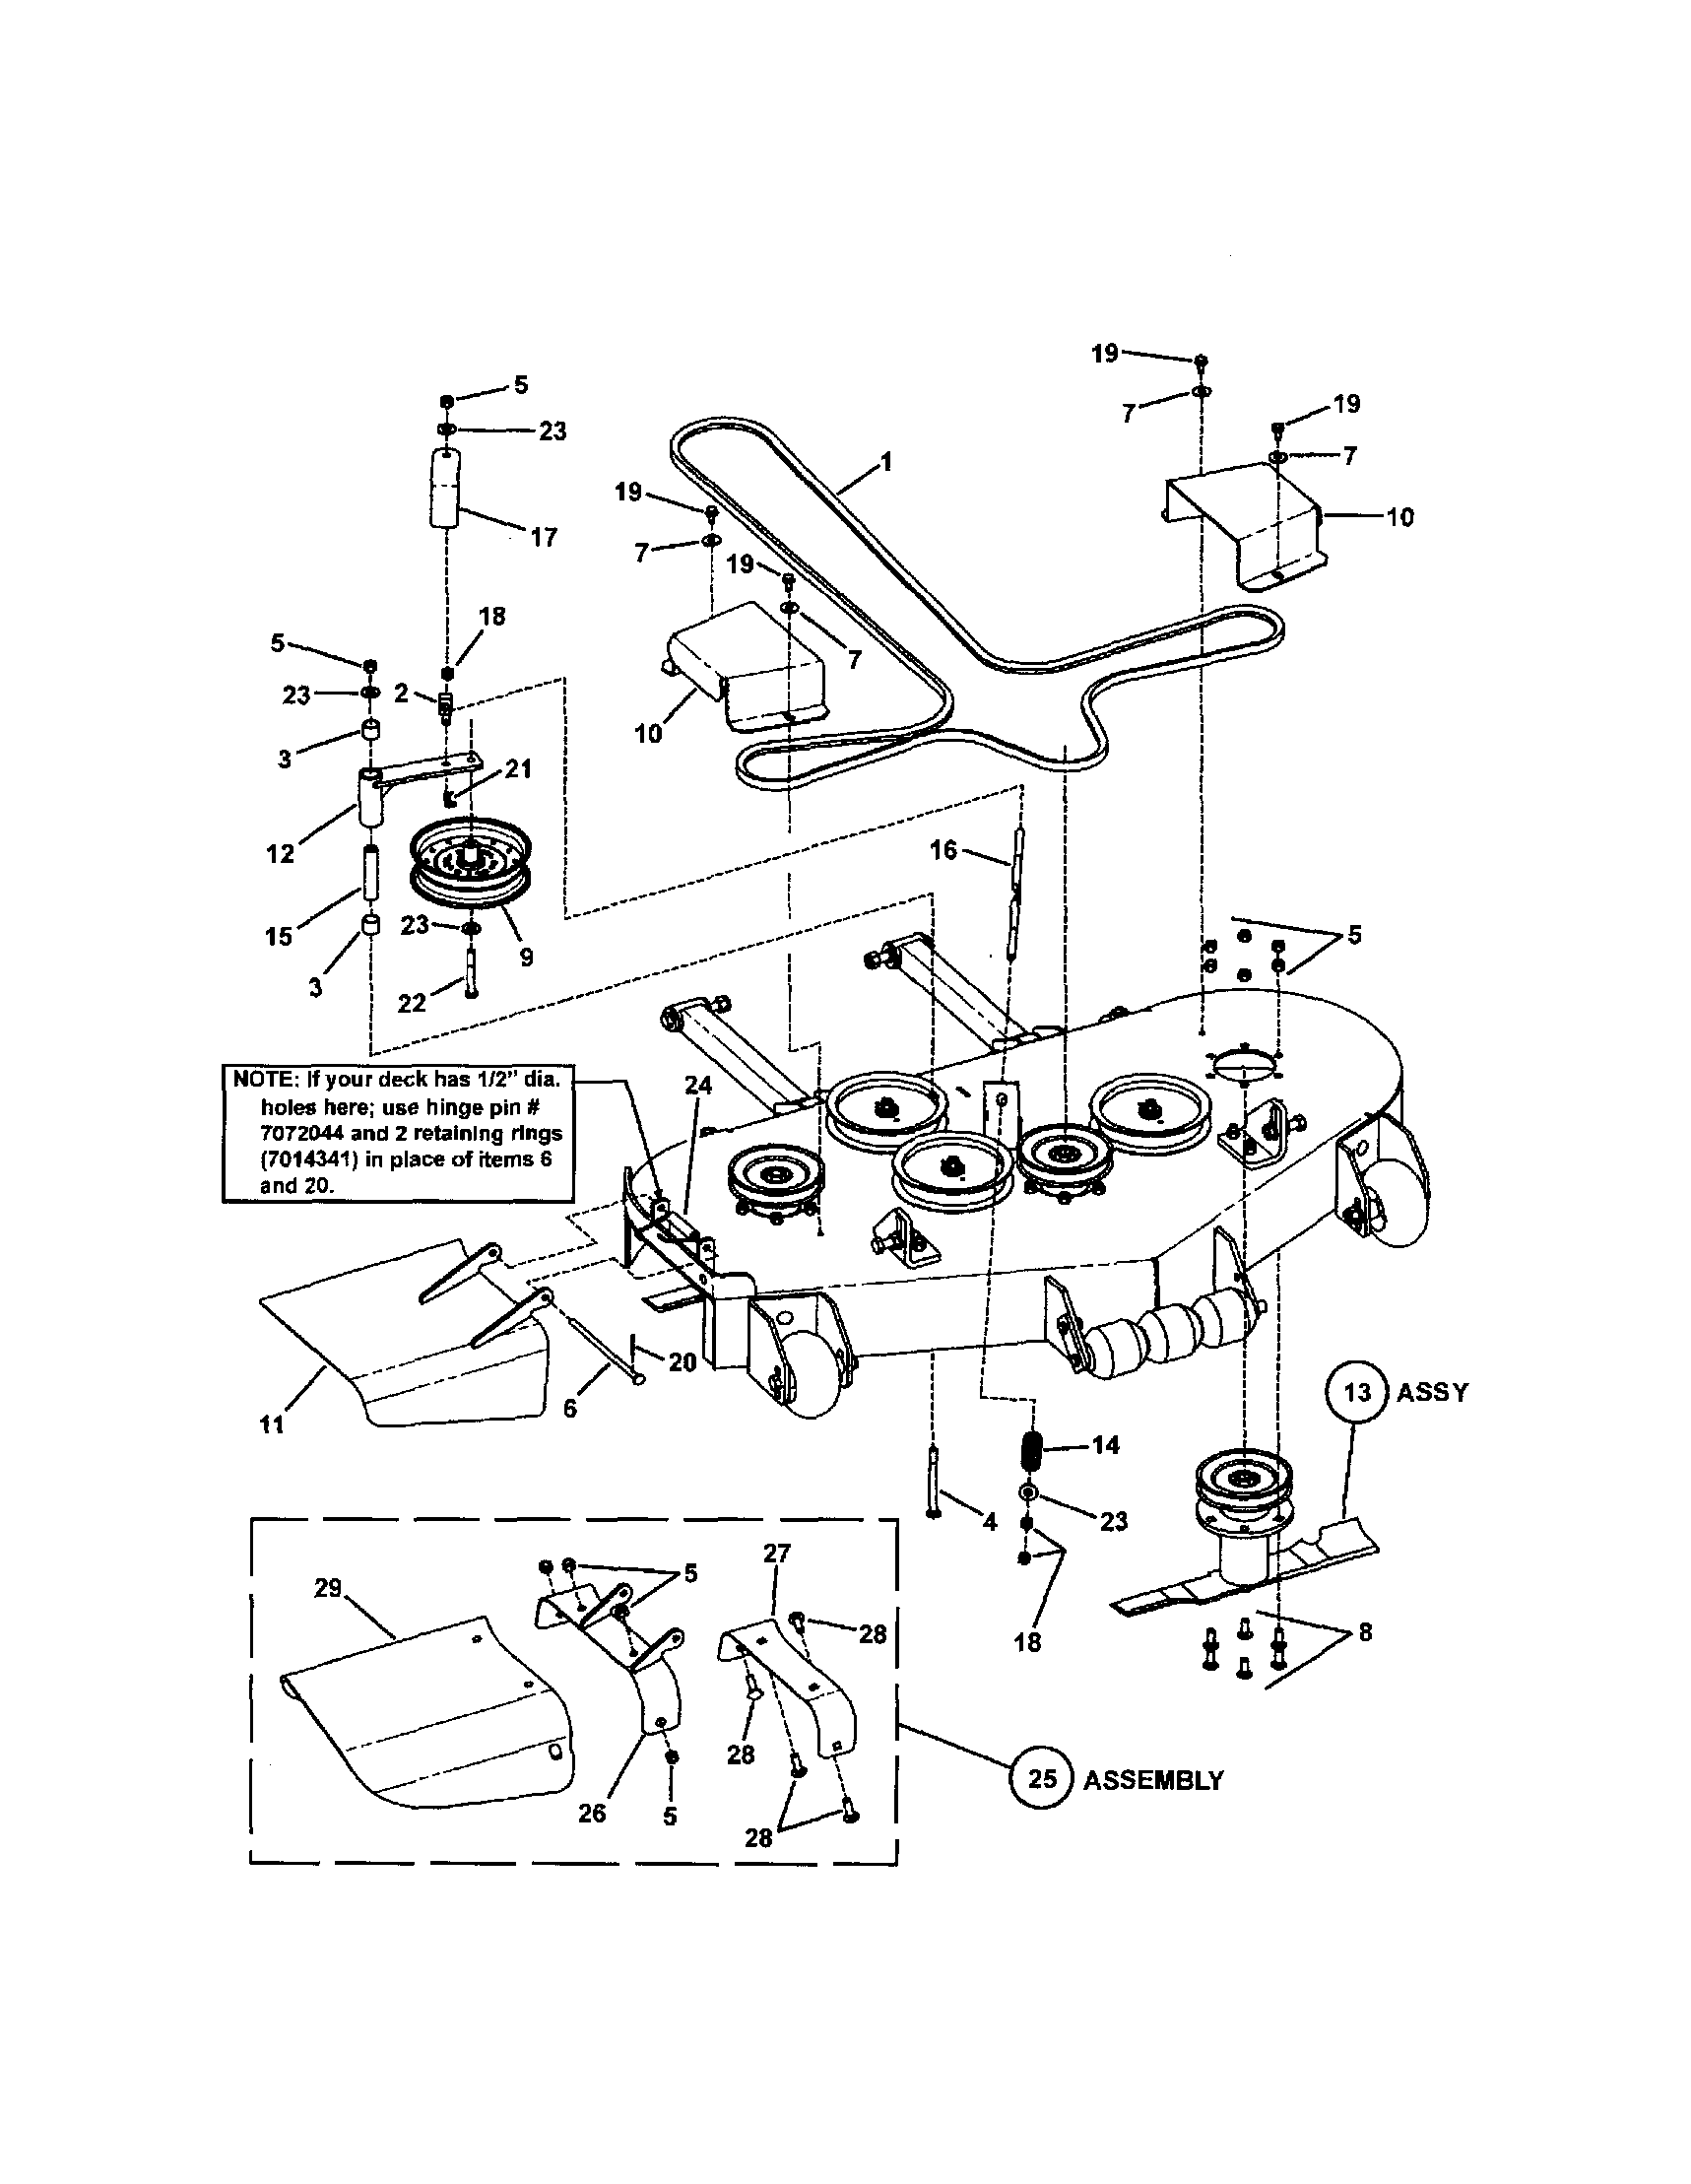 Zero Turn Mower Drawing At Free For Personal Use Sears 26 Horse Kohler Engine Electrical Diagram 1717x2217 Snapper Parts Model Czt19480kwv Partsdirect